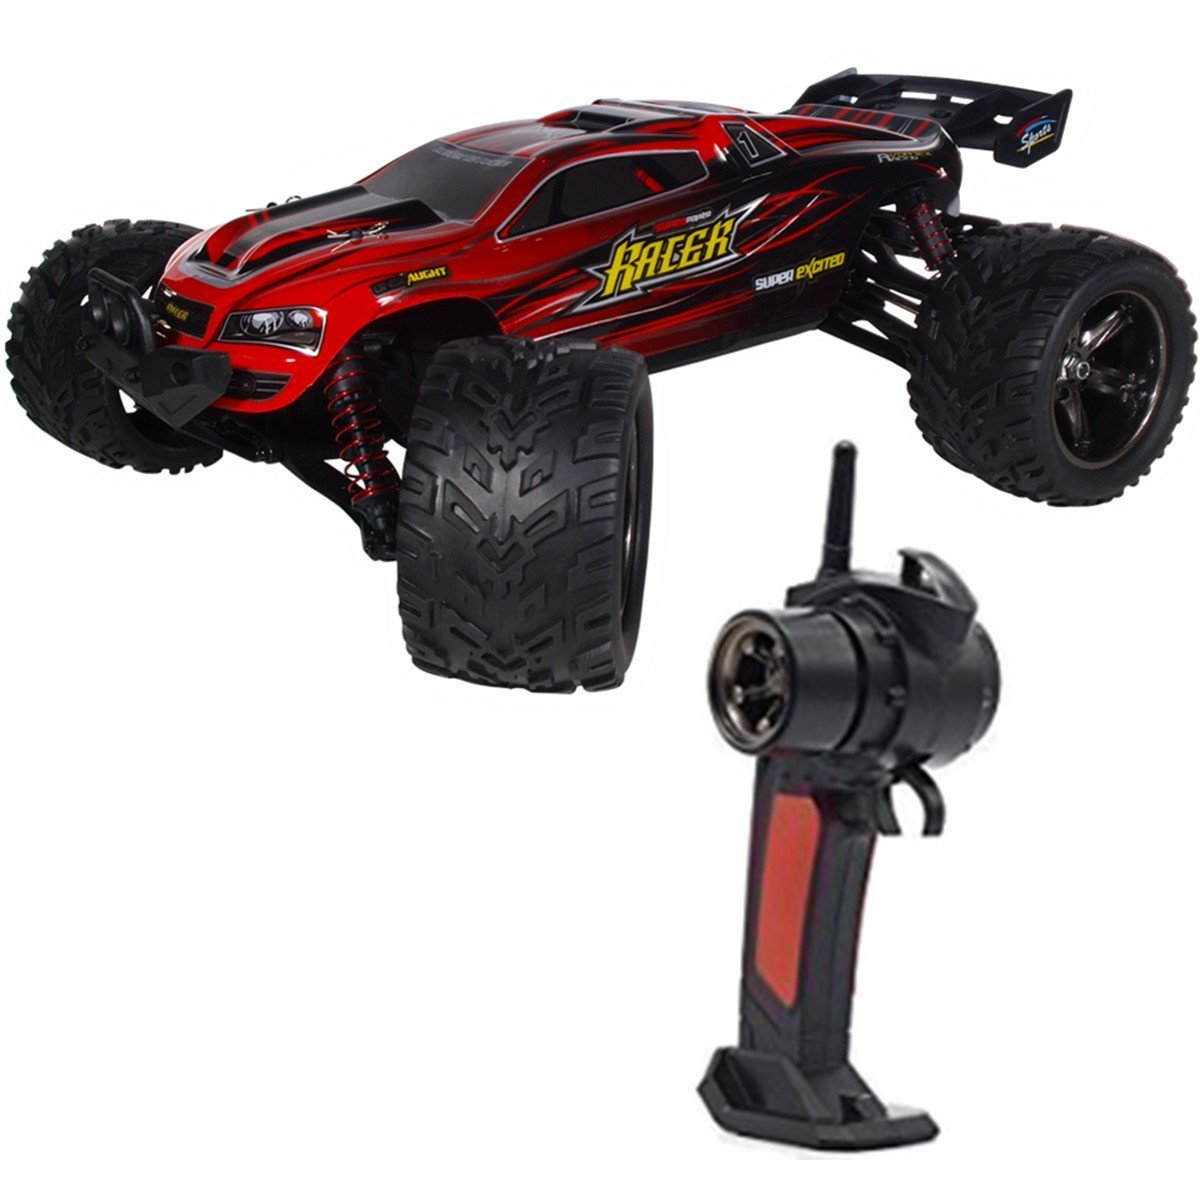 fast rc truck with Best Remote Control Cars For Kids on Ferrari Laferrari Off Road C er Edition furthermore Panther Watercar Worlds Fastest  hibious Vehicle as well Watch further 13439 Ford Indigo Concept And Aston Martin V12 additionally Lamborghini.